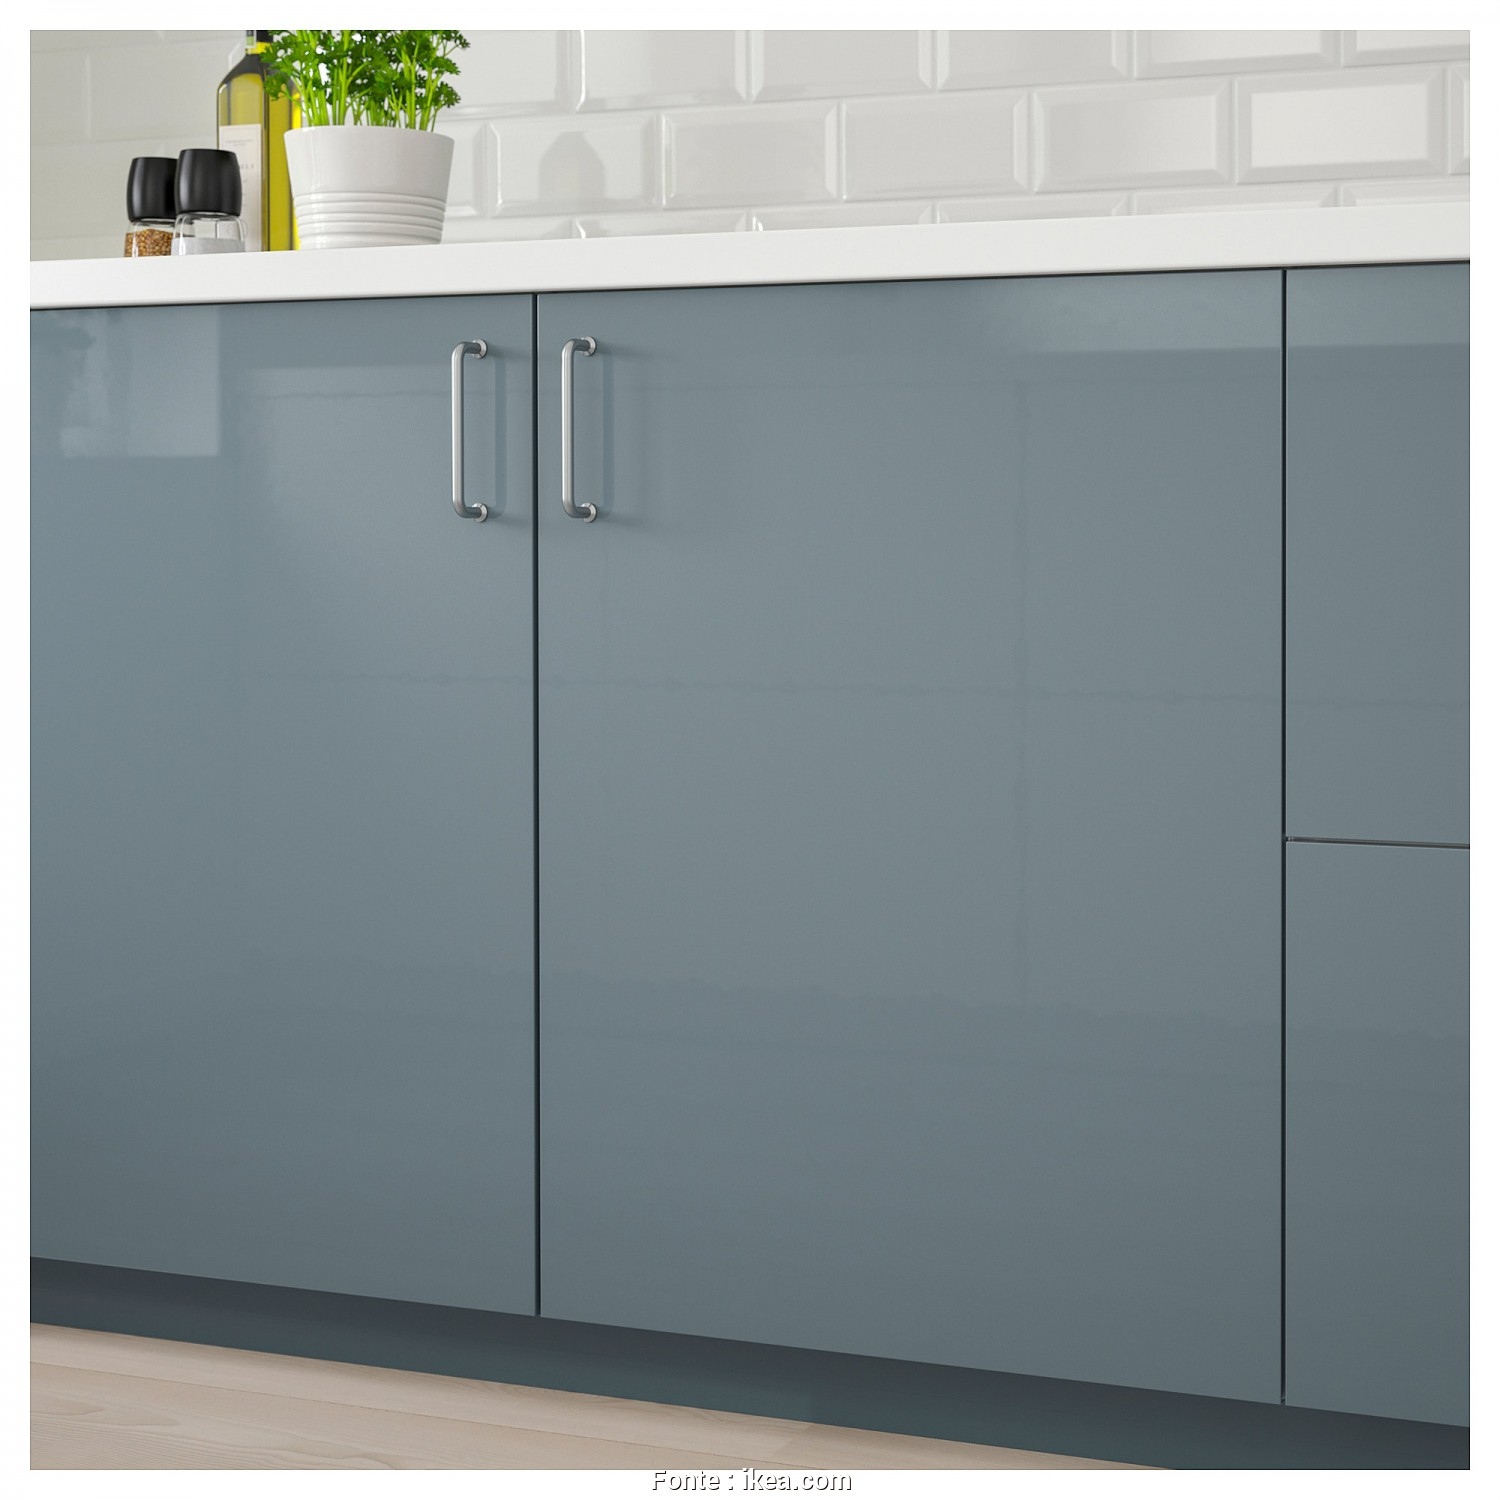 Ikea Copricuscini 40X40, Classy IKEA KALLARP Door Covered With High-Gloss Foil; Gives An Easy Care Finish